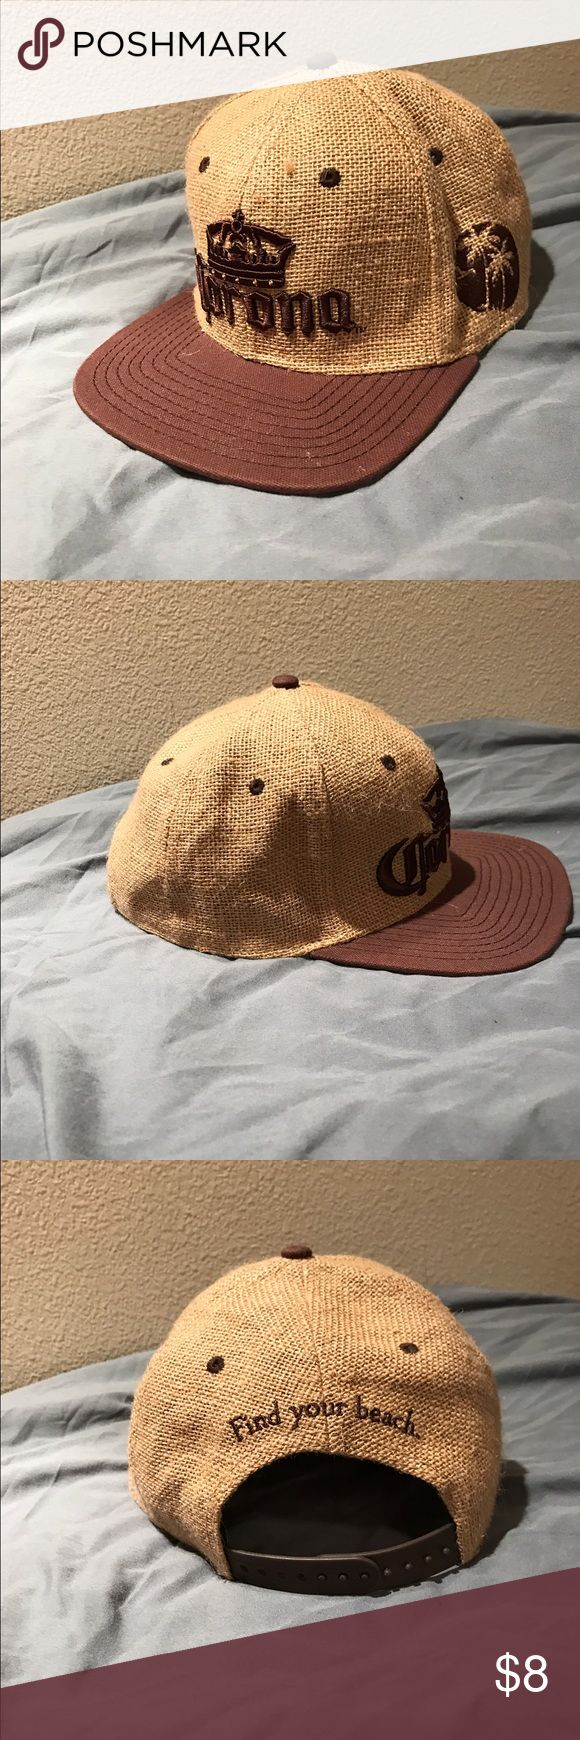 """Corona SnapBack Corona tan and brown burlap SnapBack. Corona logo on front, palm trees on left and """"find your beach"""" on the back. Only worn a few times Accessories Hats"""